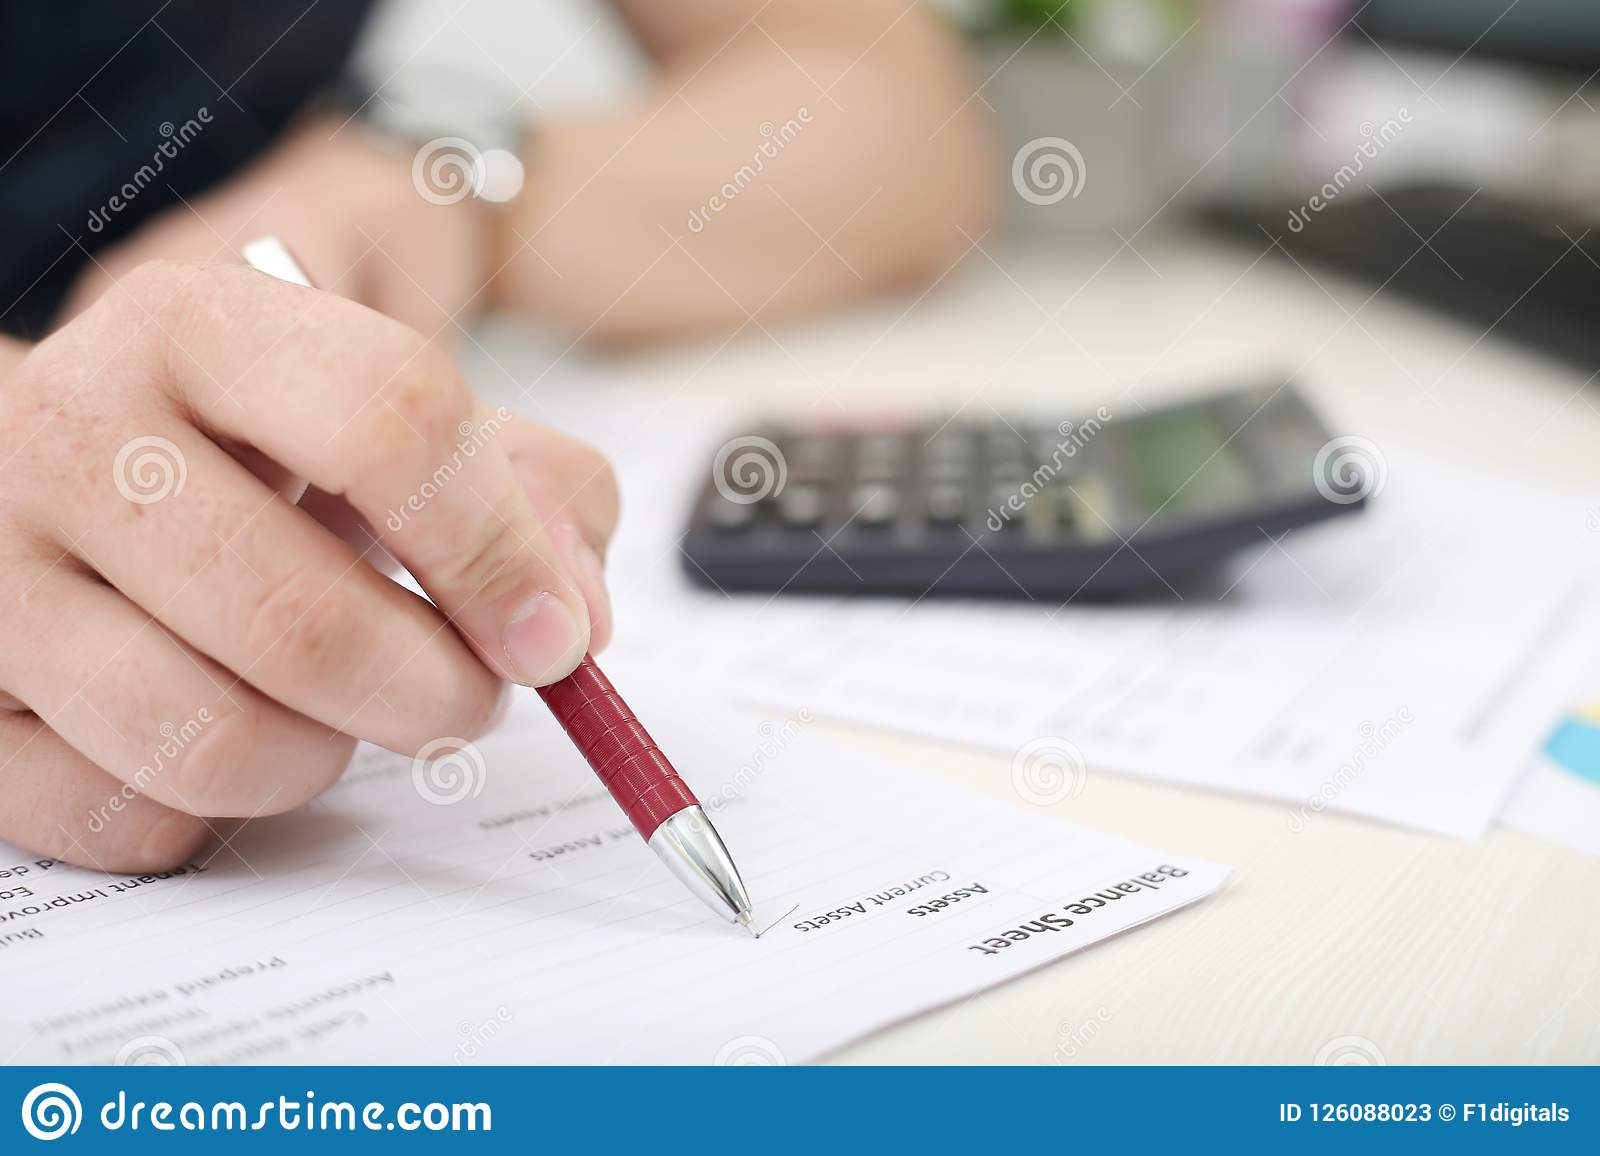 man hand is checking balance sheet with pen stock image image of